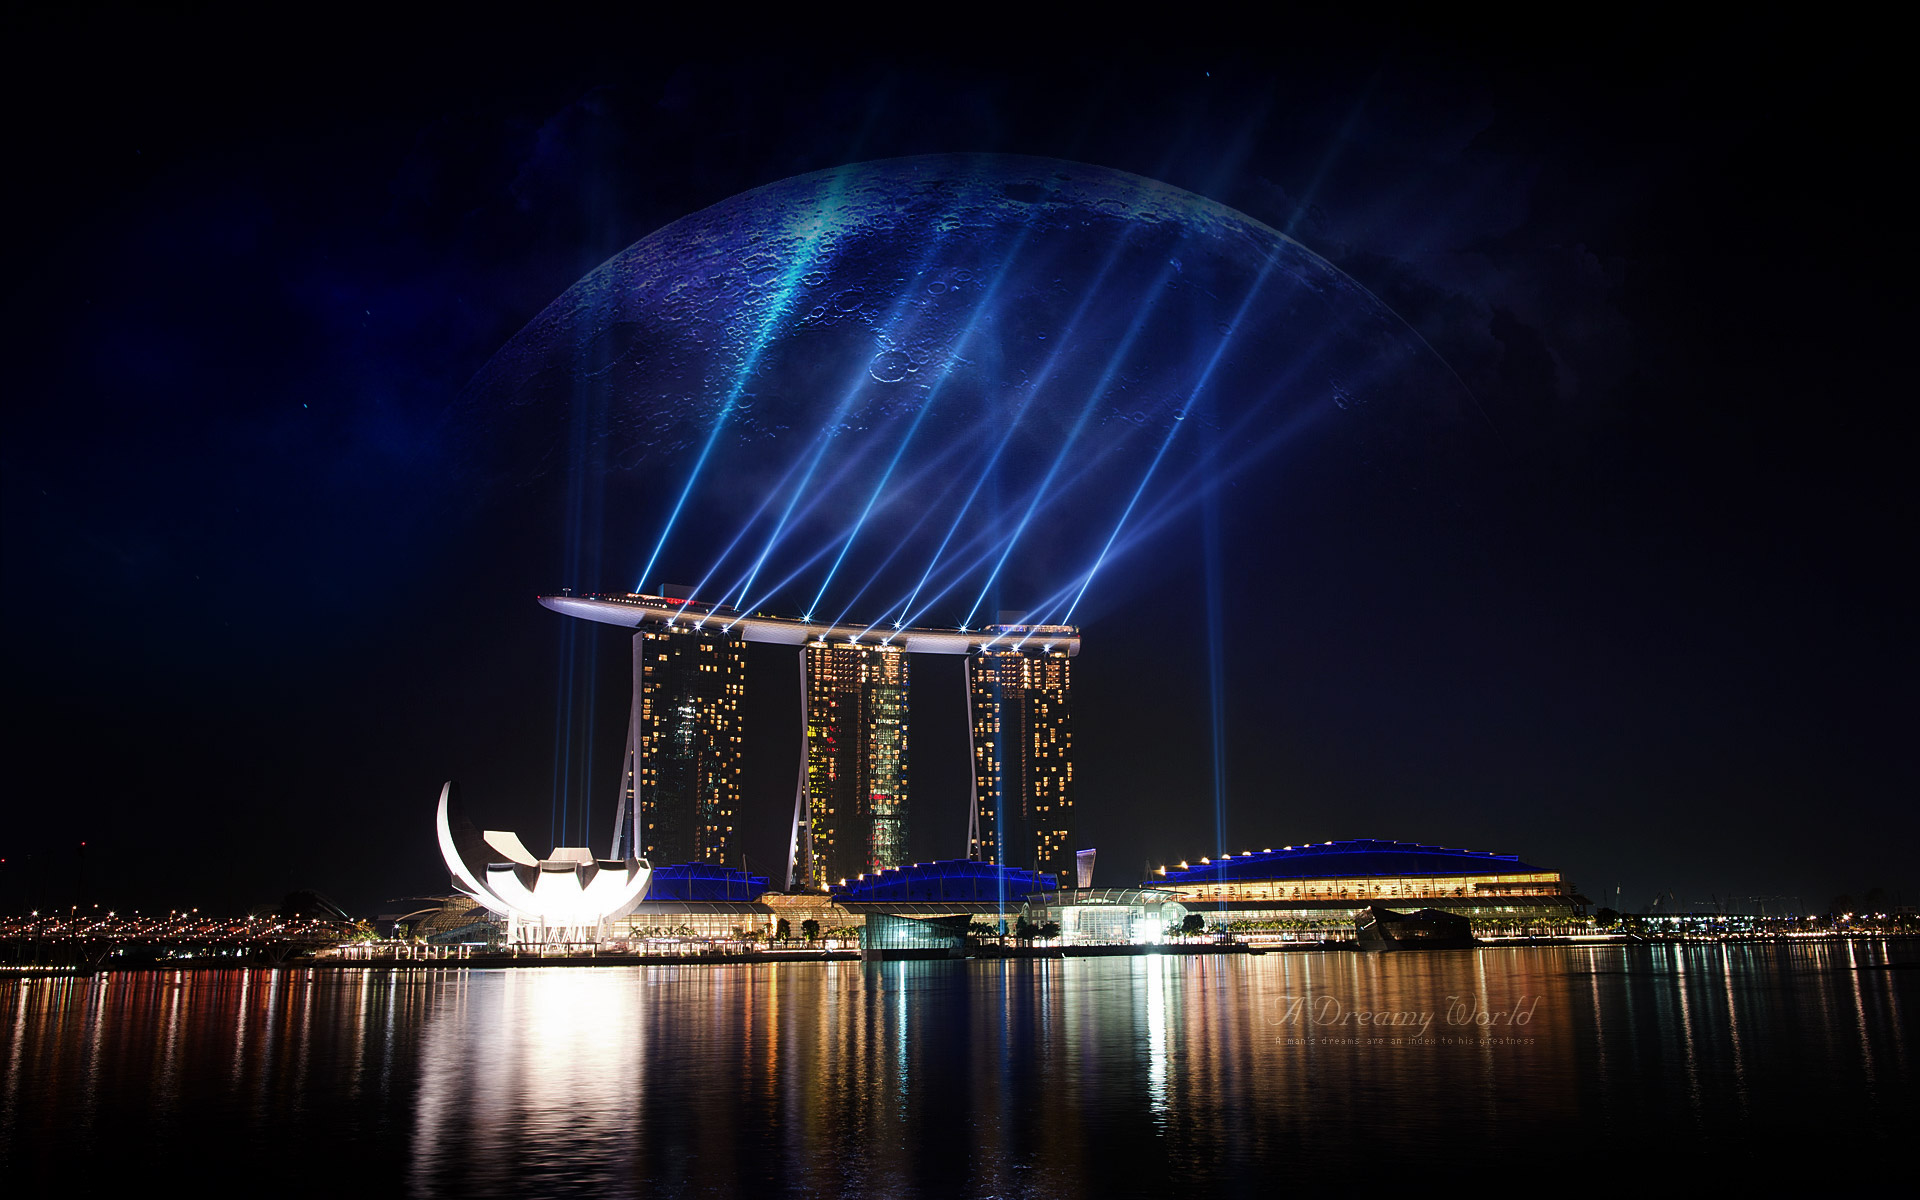 Marina Bay Sands Singapore 1406.7 Kb